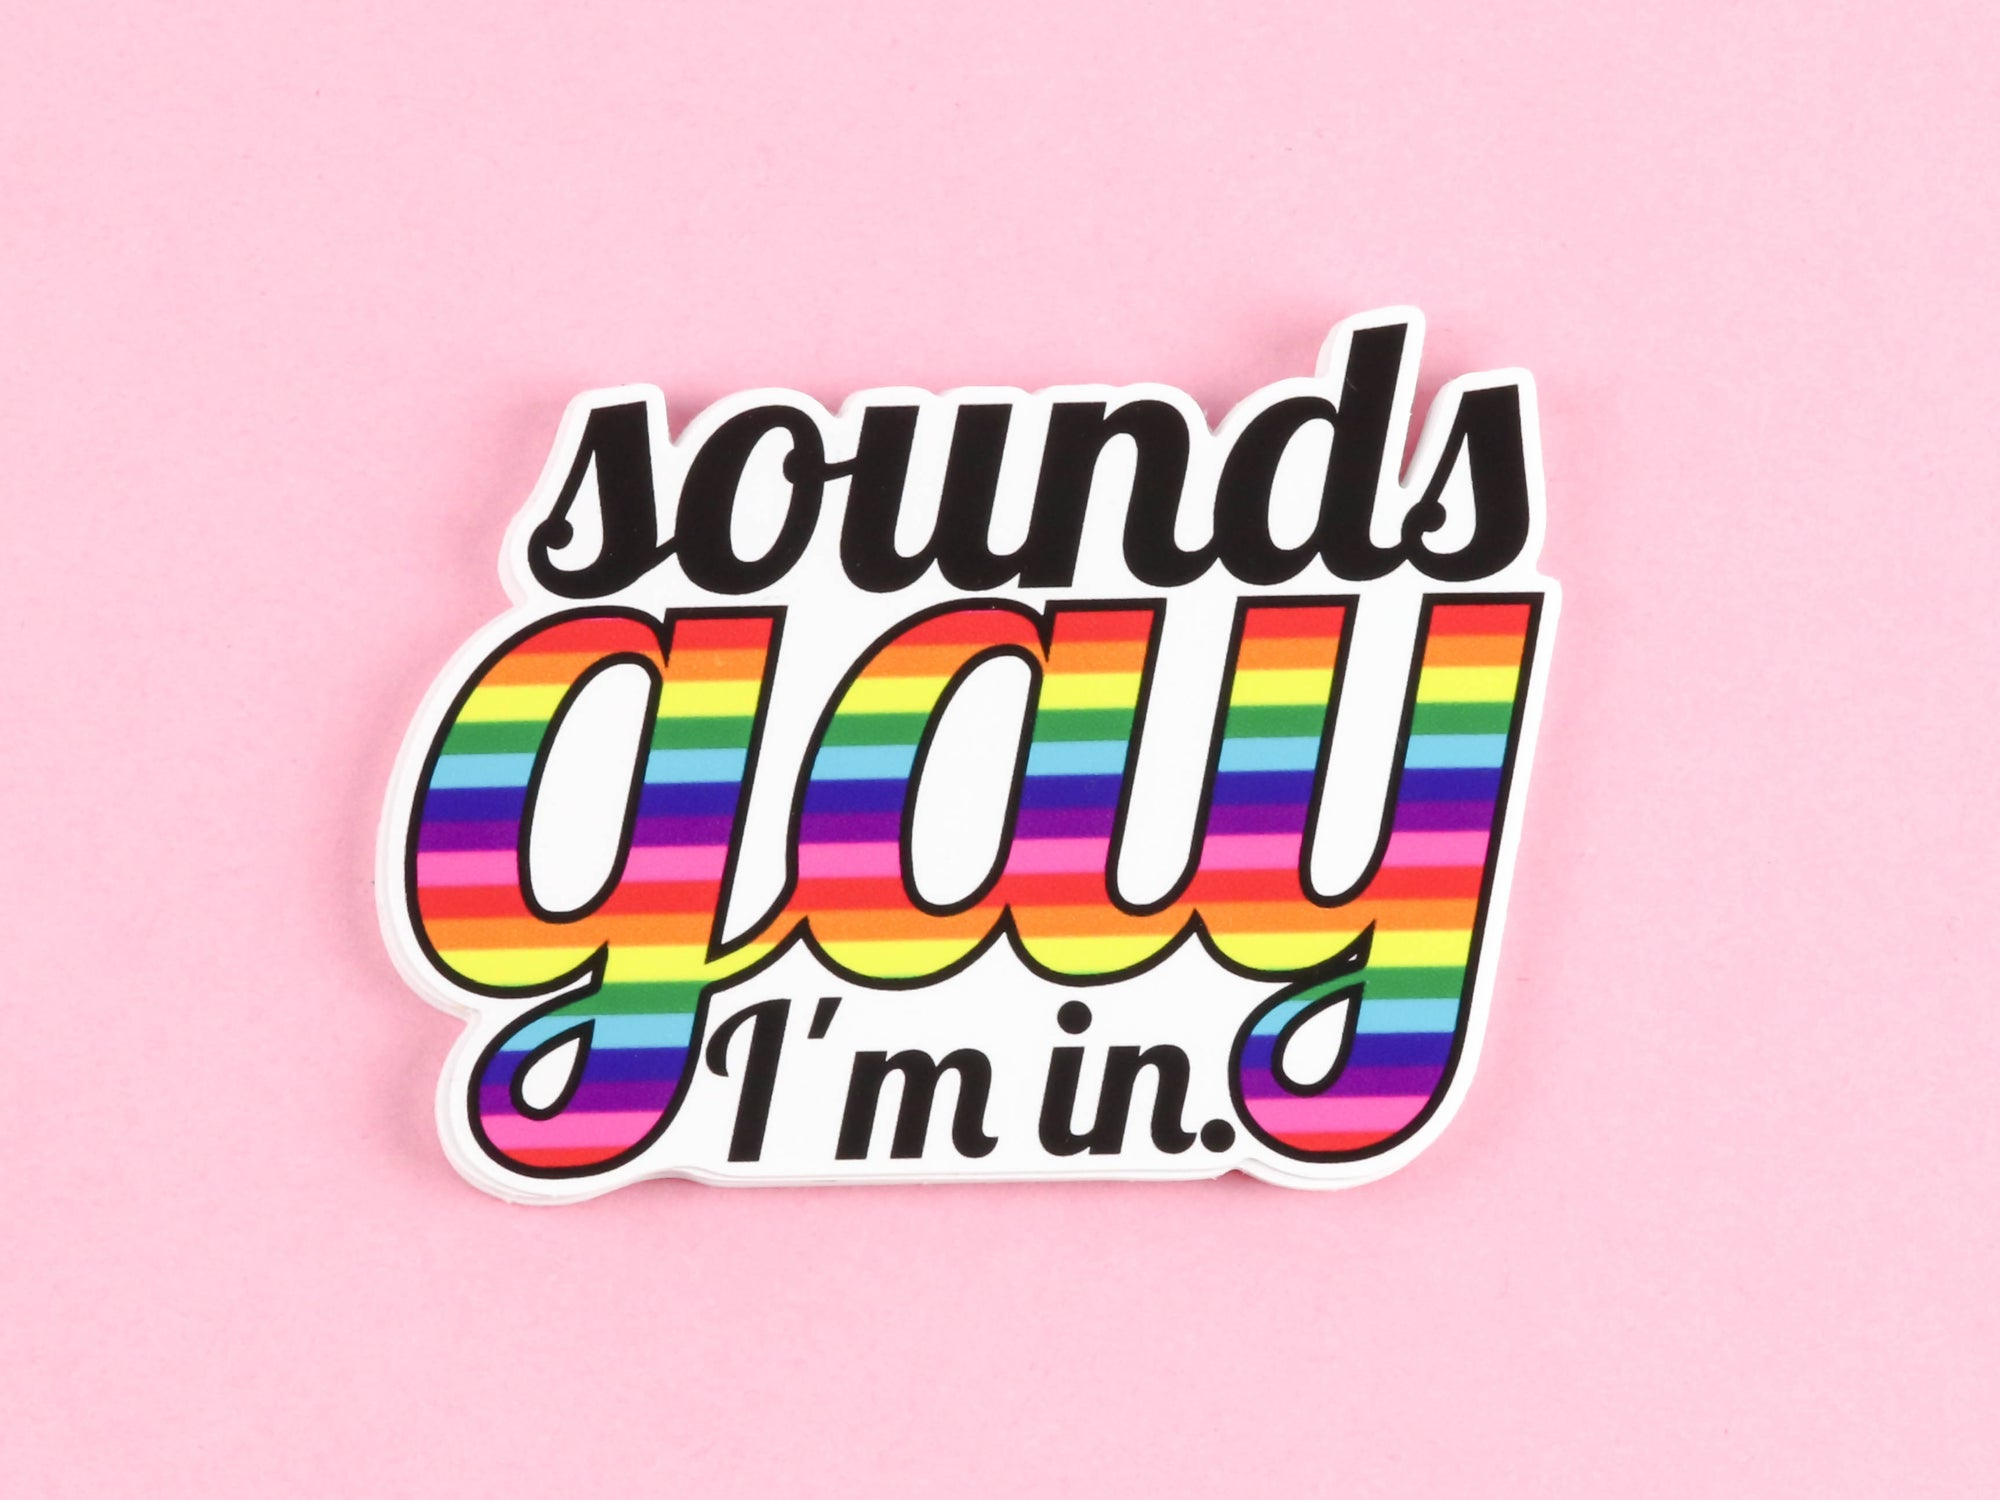 Sounds Gay, I'm in! Sticker Queer Die-Cut Sticker - Supports The Ten Oaks Project